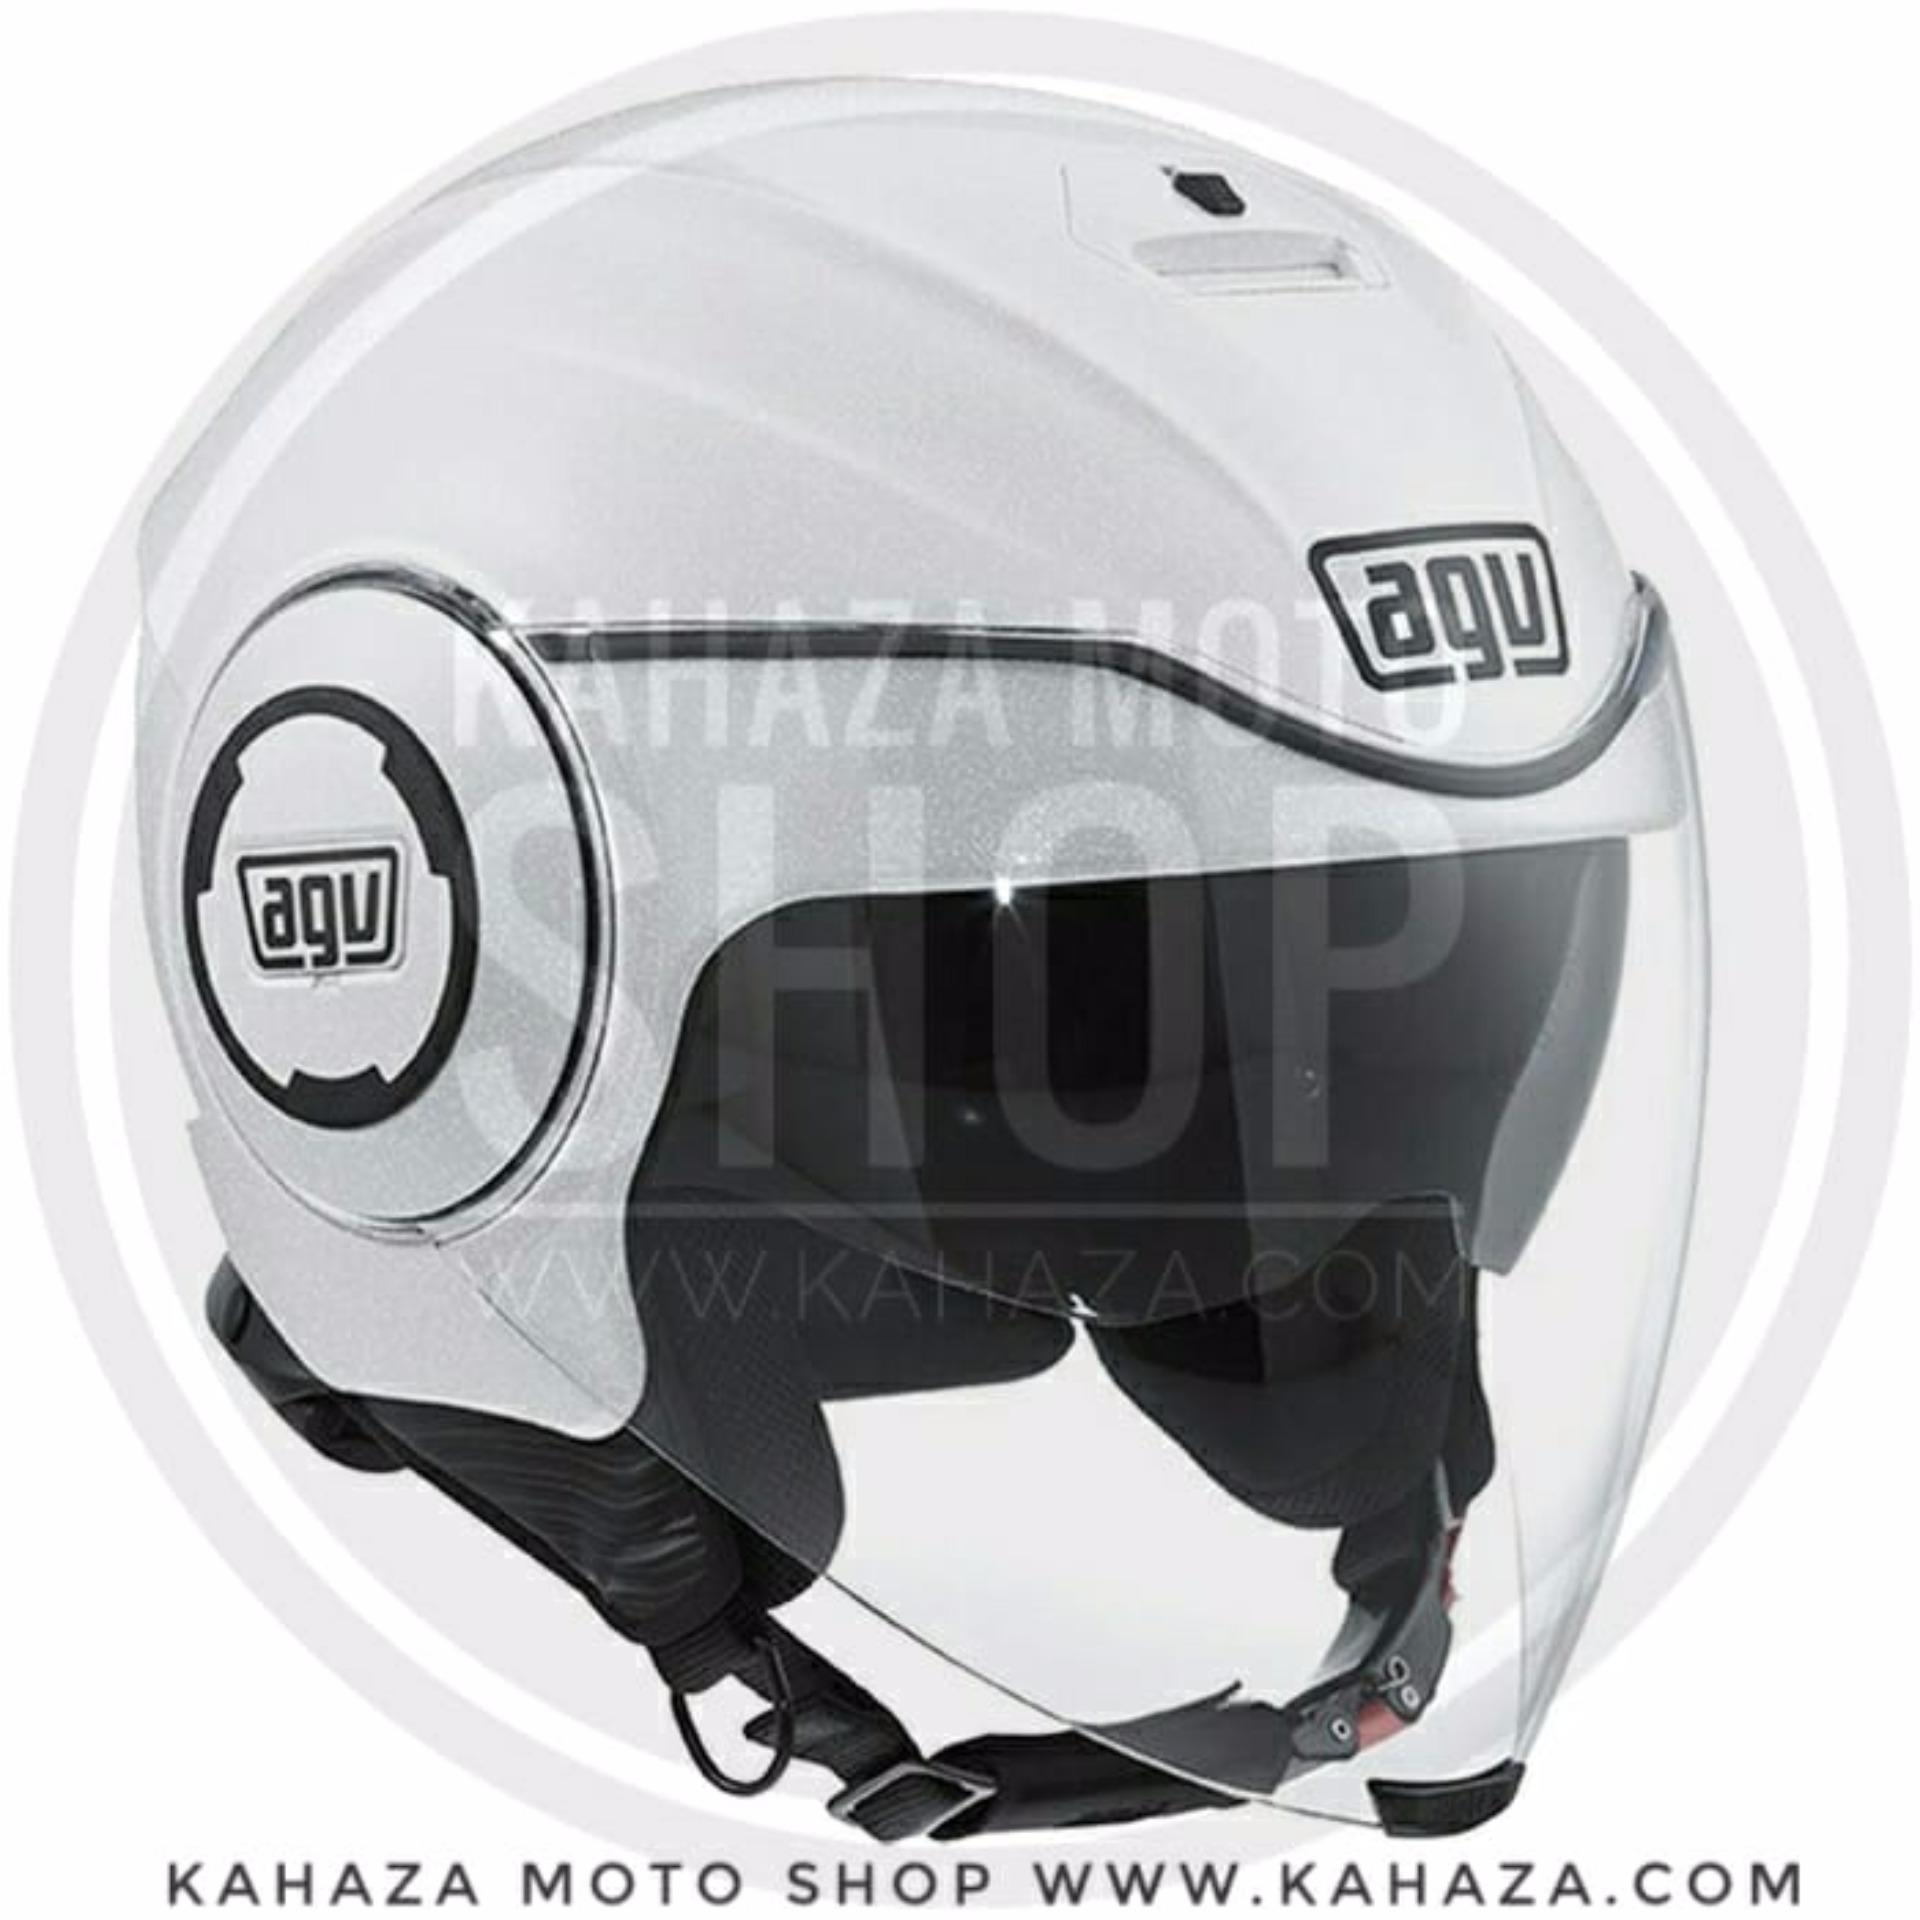 Buy Sell Cheapest Agv K3sv White Best Quality Product Deals Zeus 811 Black Green Al3 Helm Fullface M L Xl Fluid Pearl Asian Fit Sni